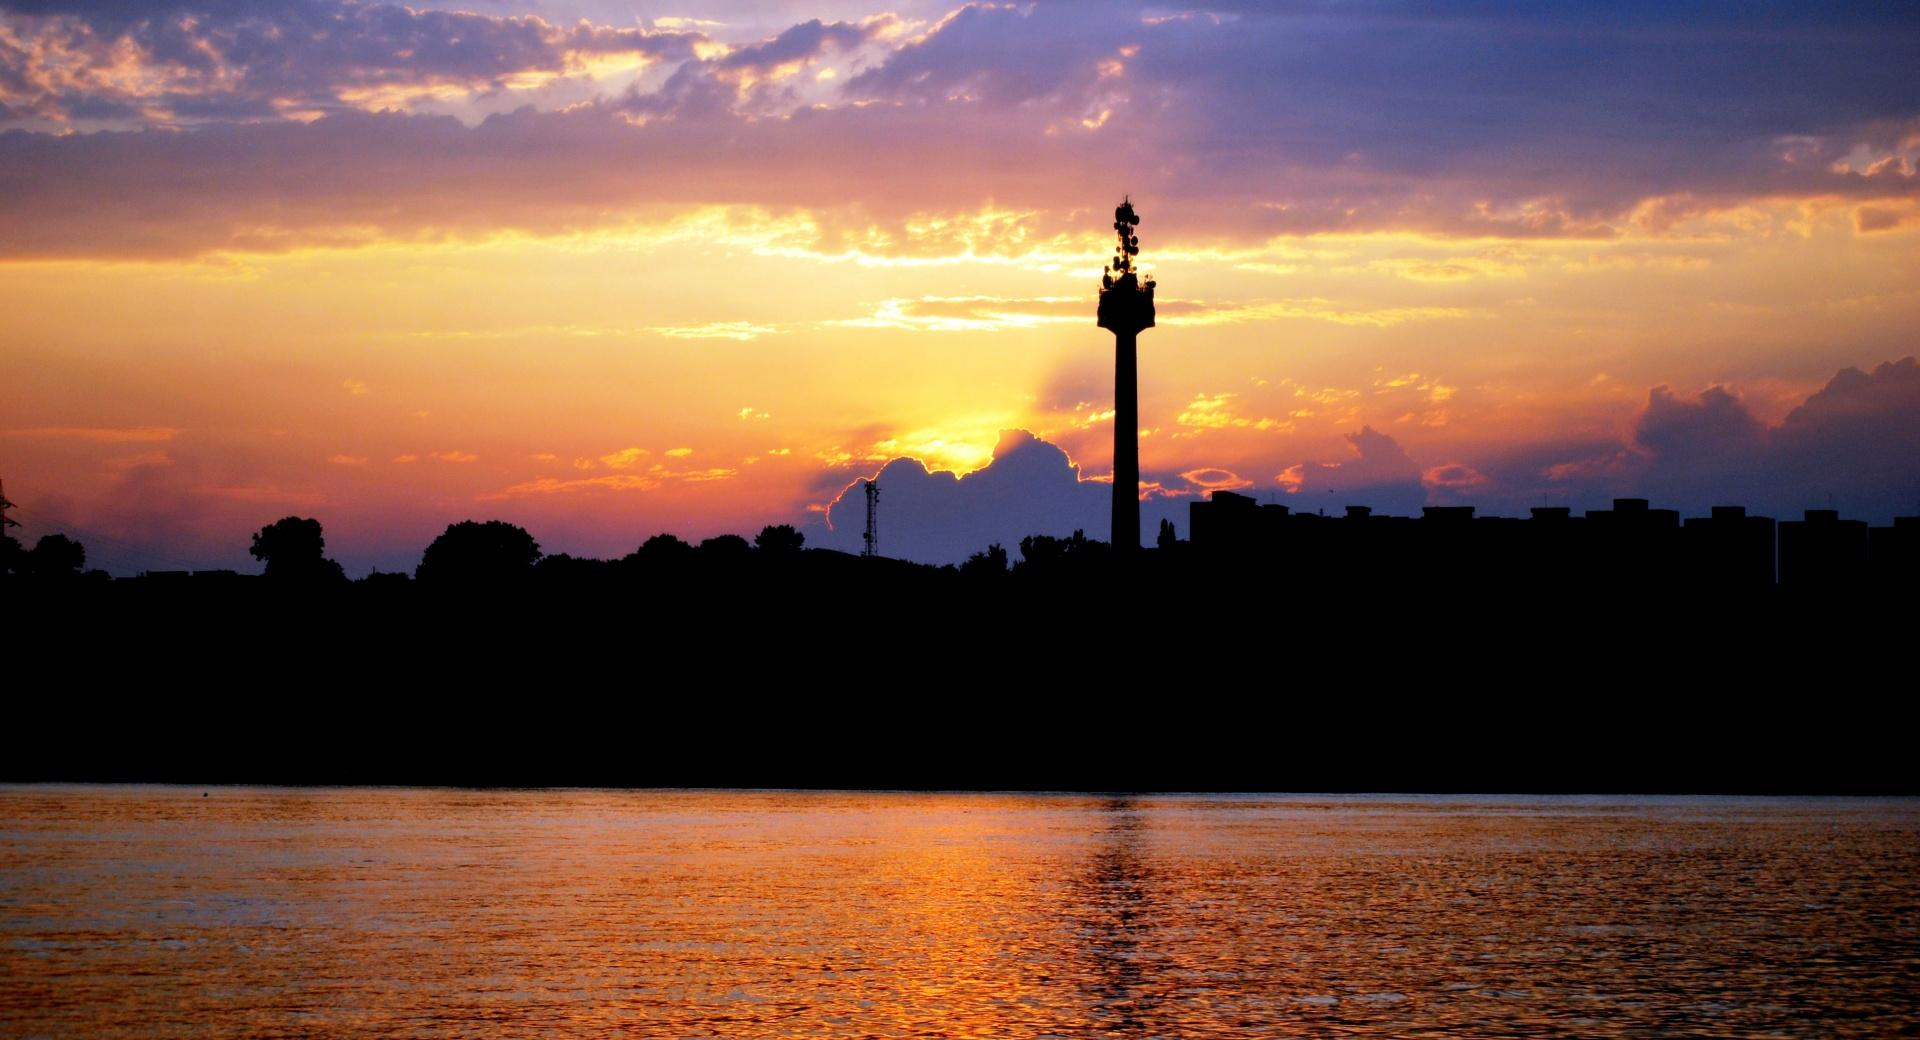 The Sunset of City and Danube wallpapers HD quality